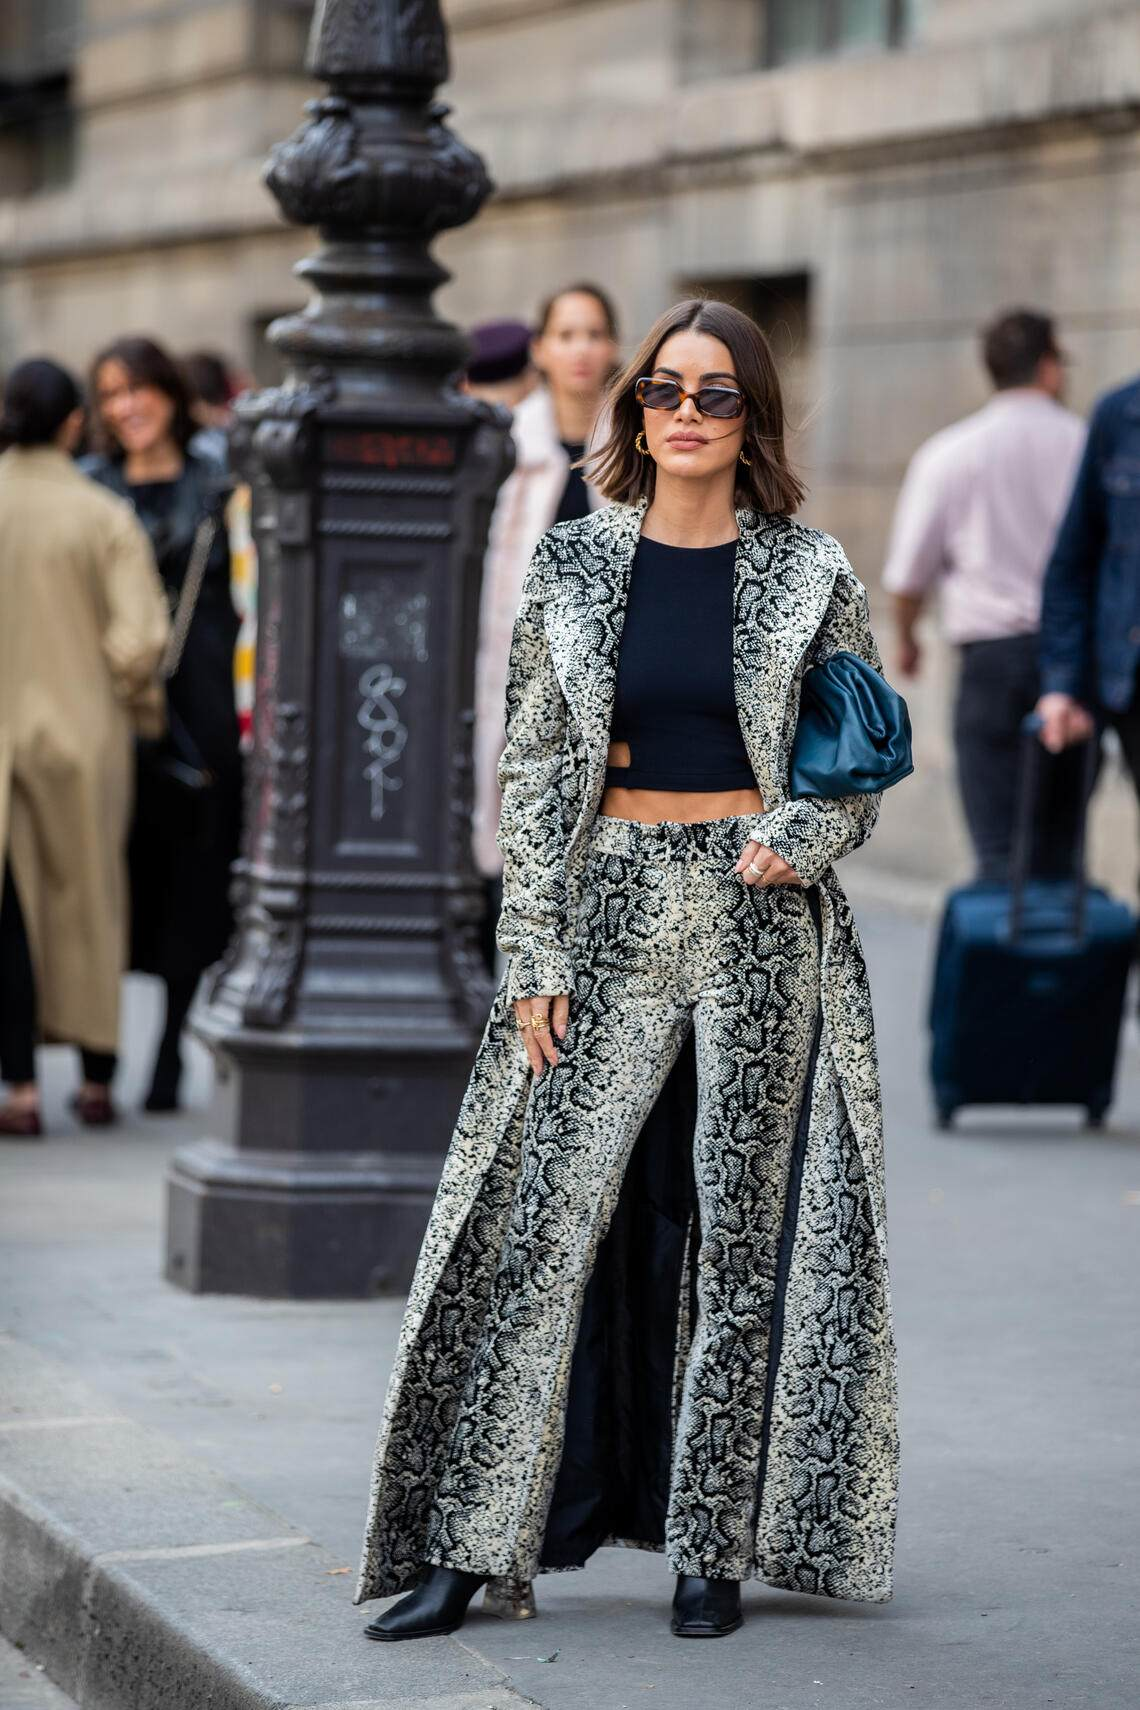 PARIS, FRANCE - SEPTEMBER 30: Camila Coelho seen wearing cropped top, coat and pants with snake print, clutch outside Giambattista Valli during Paris Fashion Week Womenswear Spring Summer 2020 on September 30, 2019 in Paris, France. (Photo by Christian Vierig/Getty Images)